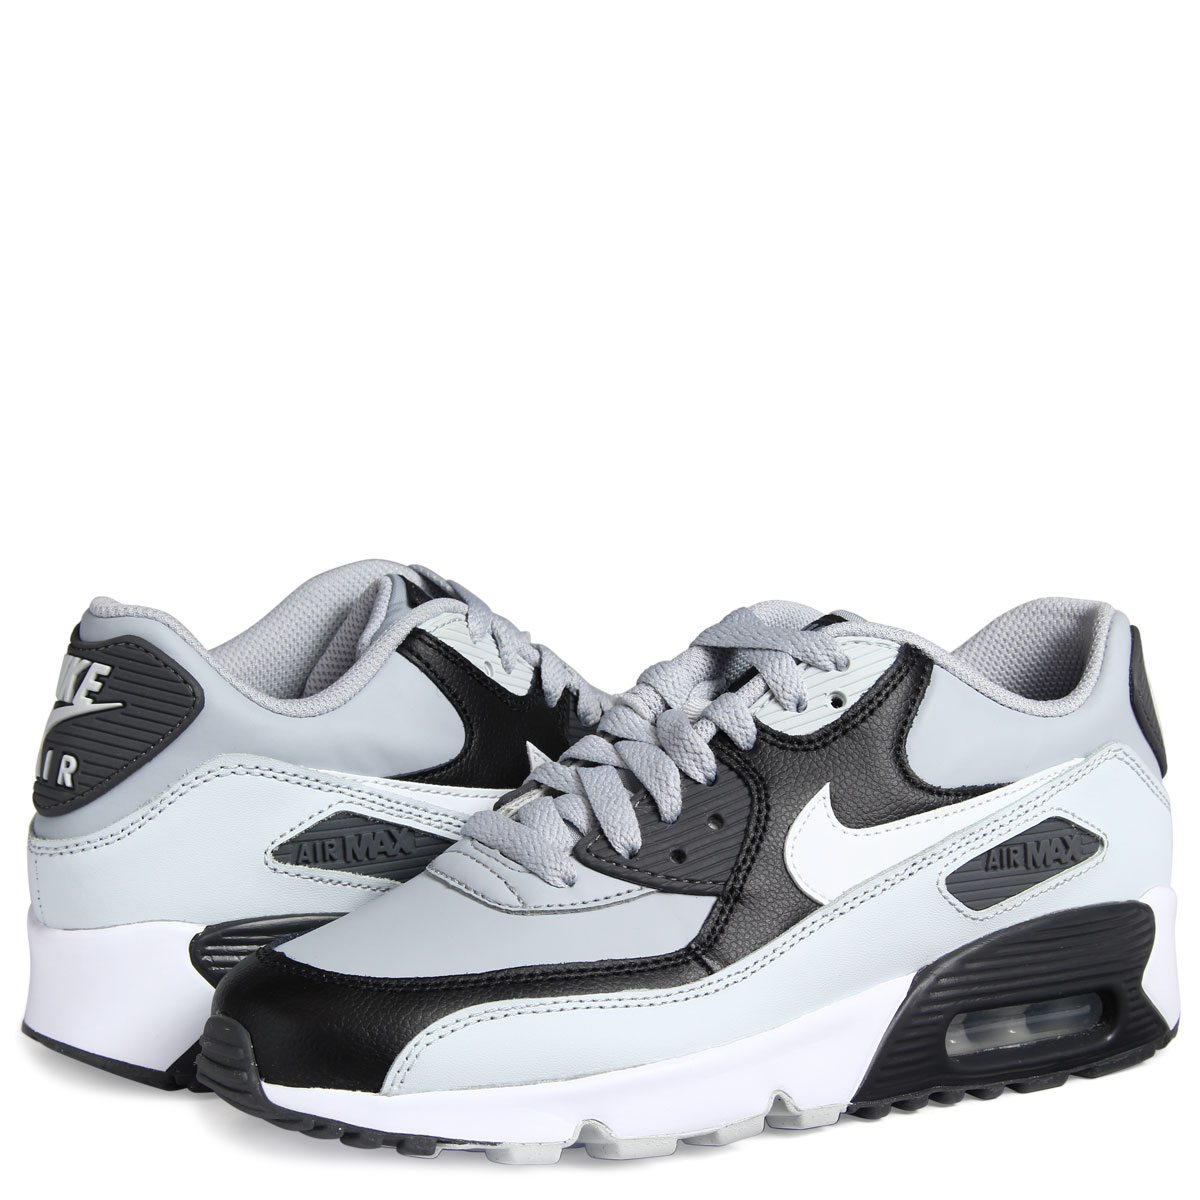 Whats up Sports: NIKE WMNS AIR MAX 90 Kie Ney AMAX 90 lady's